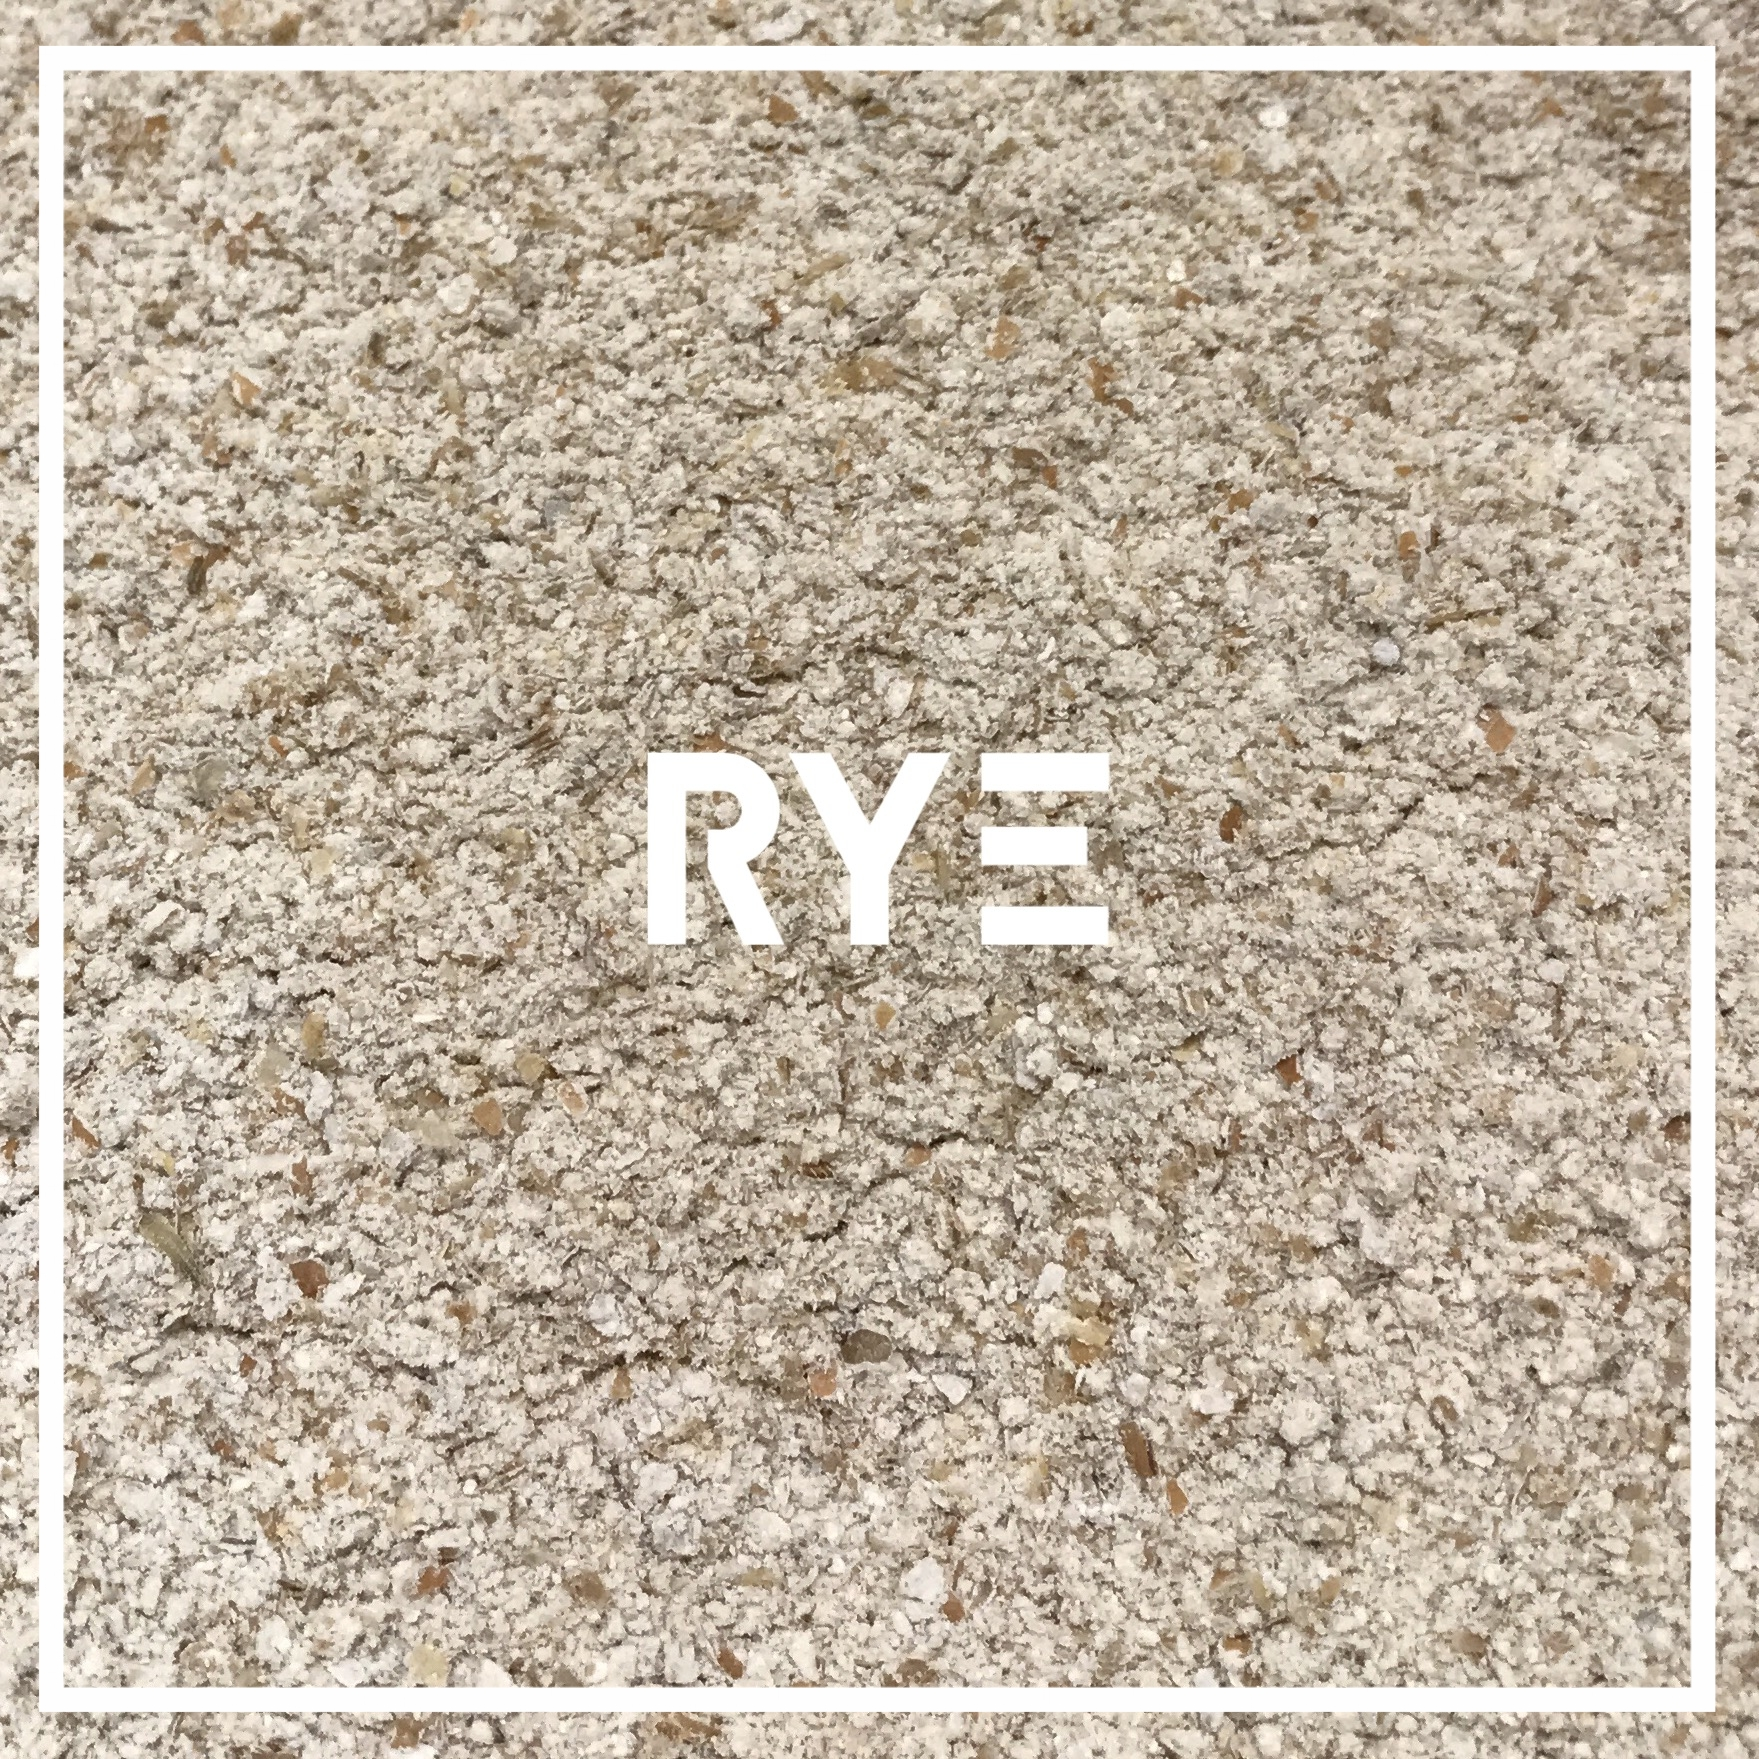 Our whole grain rye is grown by Larry Dammen near Argyle, WI. It is stone-milled at  Lonesome Stone Mill , in Lone Rock WI.   Used in: Windy Point   Rye is an ancient grain originating in central Europe. We join artisan bakers and whisky distillers in our love of its earthy, subtly spicy character.